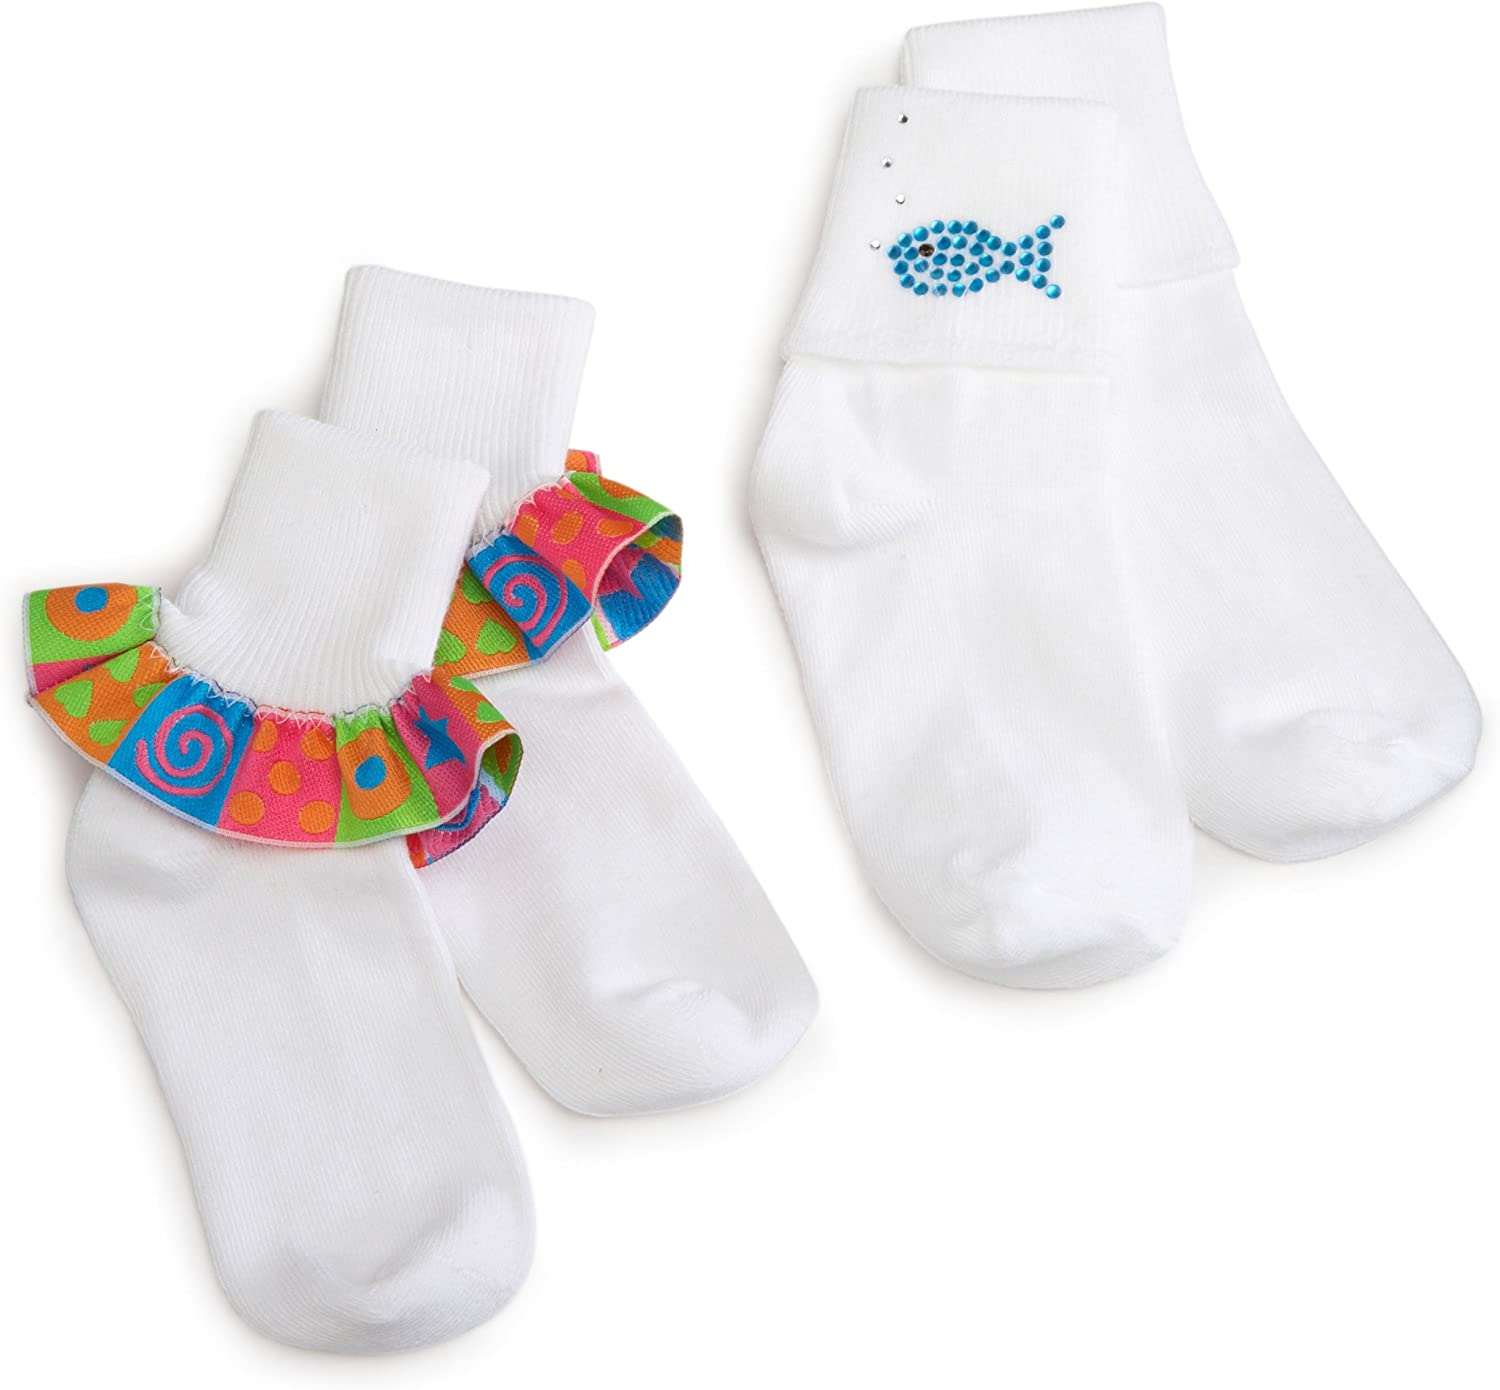 Jefferies Socks Little Girls' Stars And Swirls With Fishes Applique